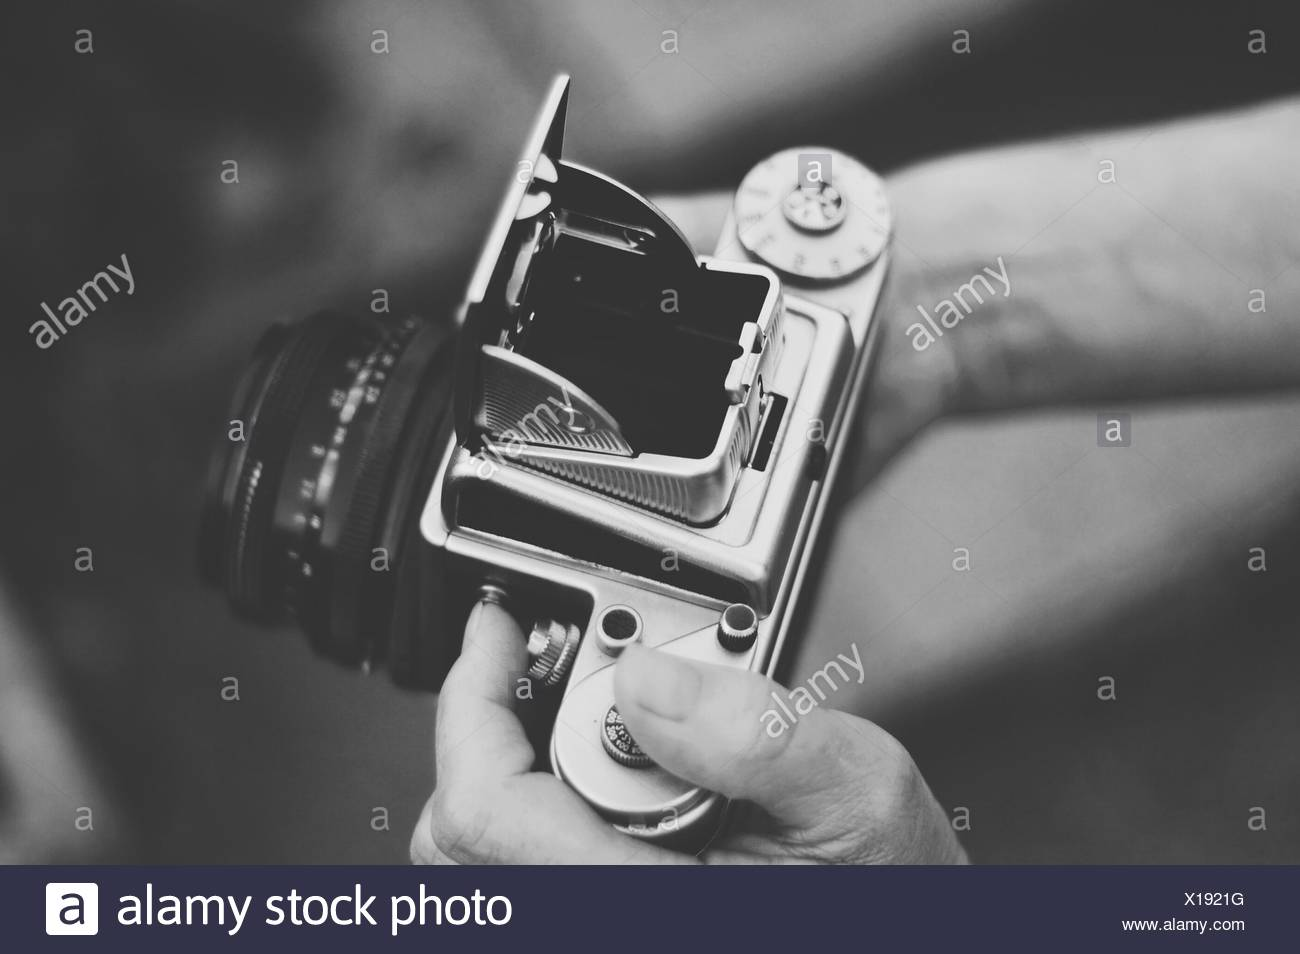 United Kingdom, England, Warwickshire, Stratford-upon-Avon, Woman holding old vintage medium format camera - Stock Image